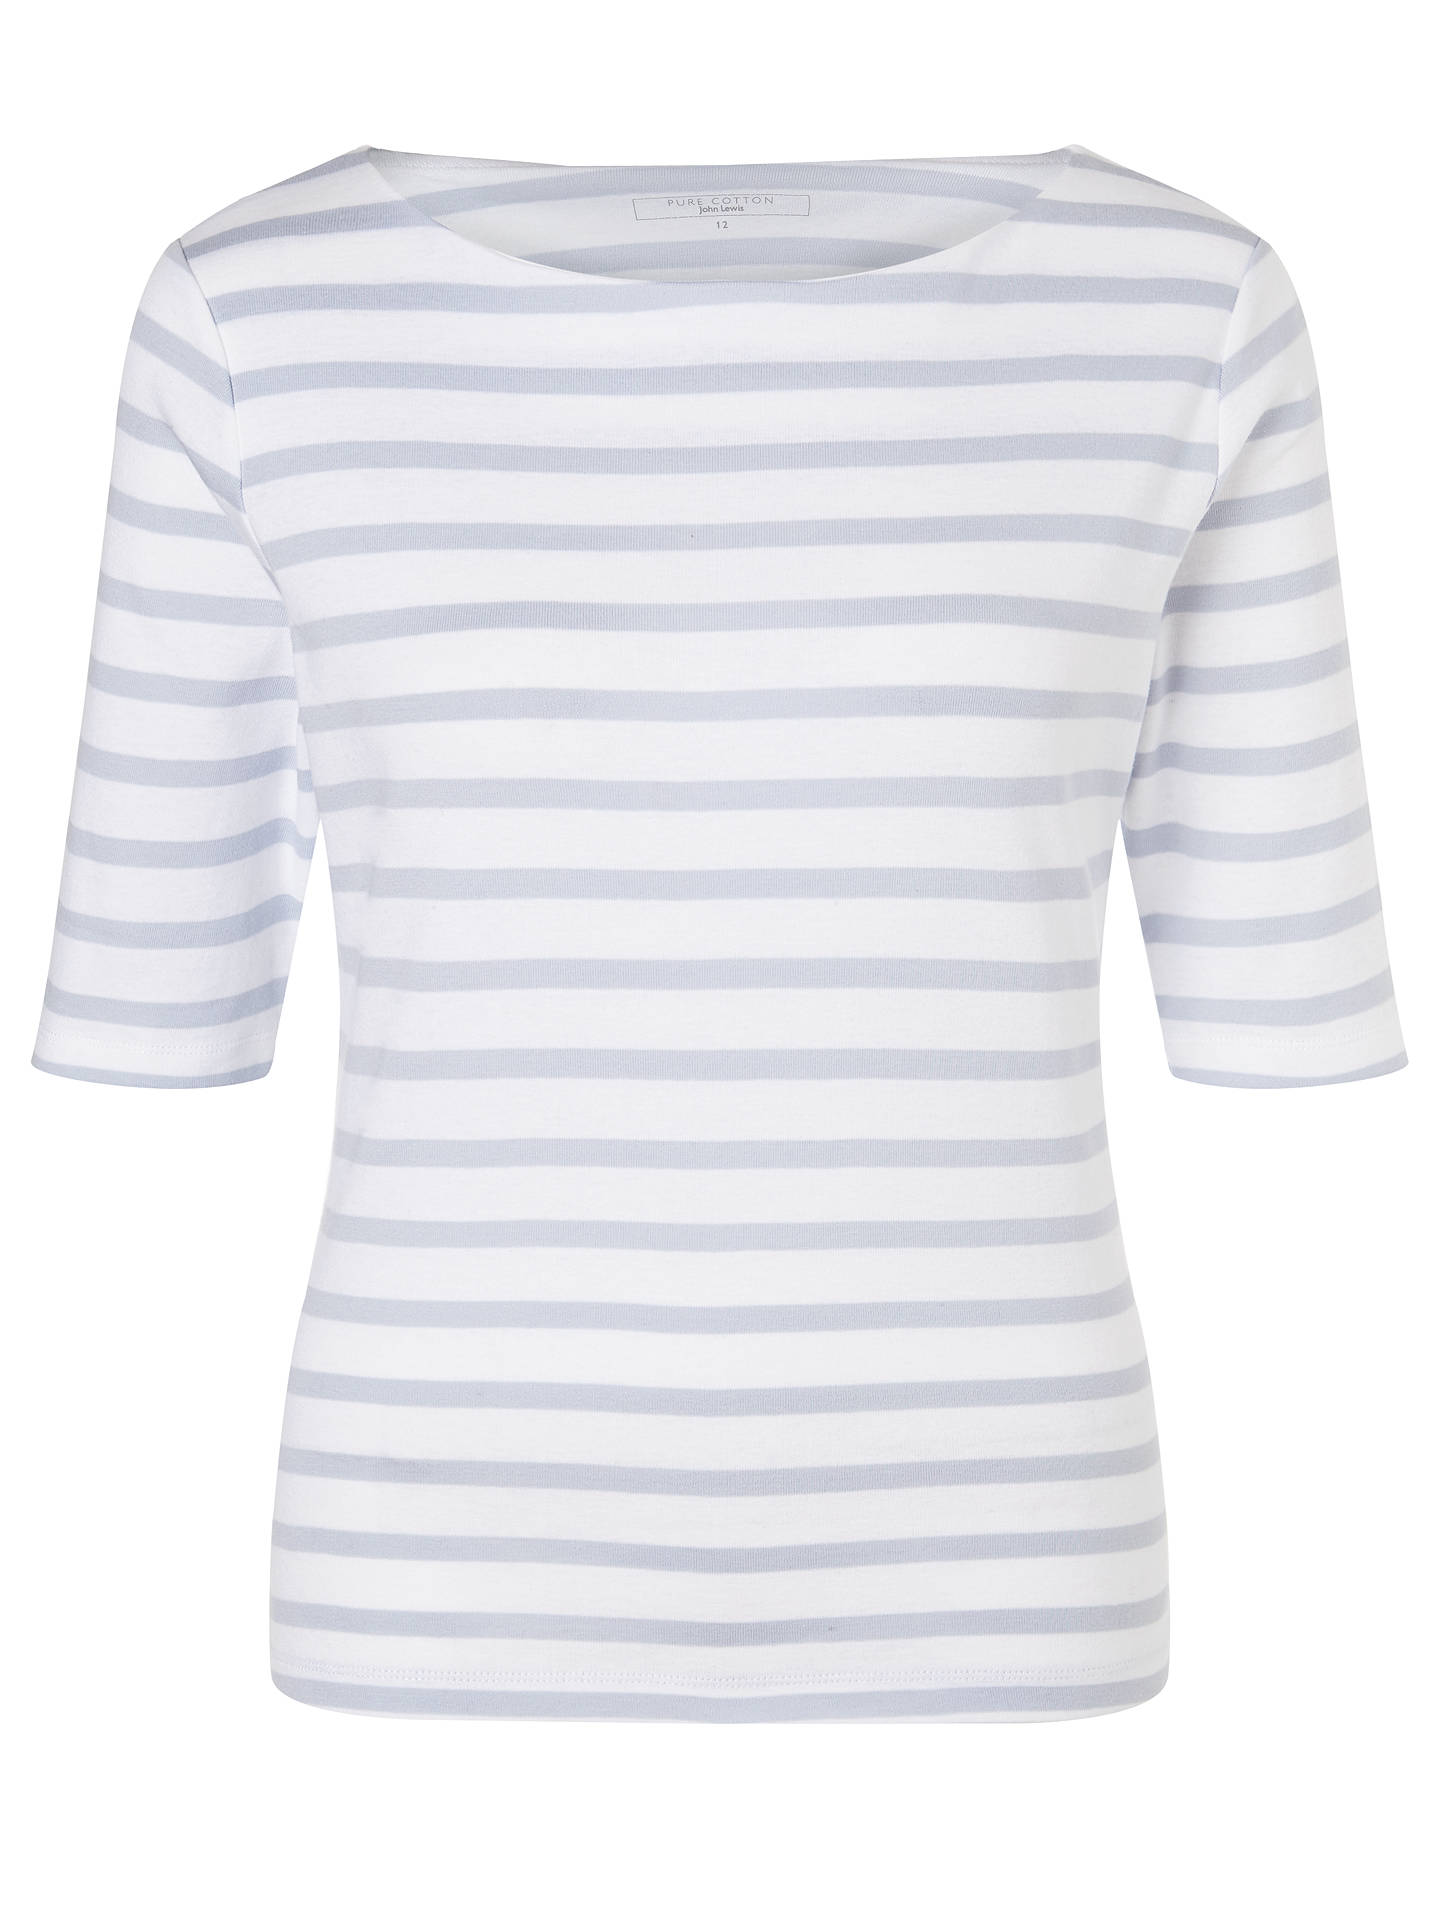 Buy John Lewis & Partners Half-Sleeve Breton Stripe Top, Pale Blue/White, 16 Online at johnlewis.com